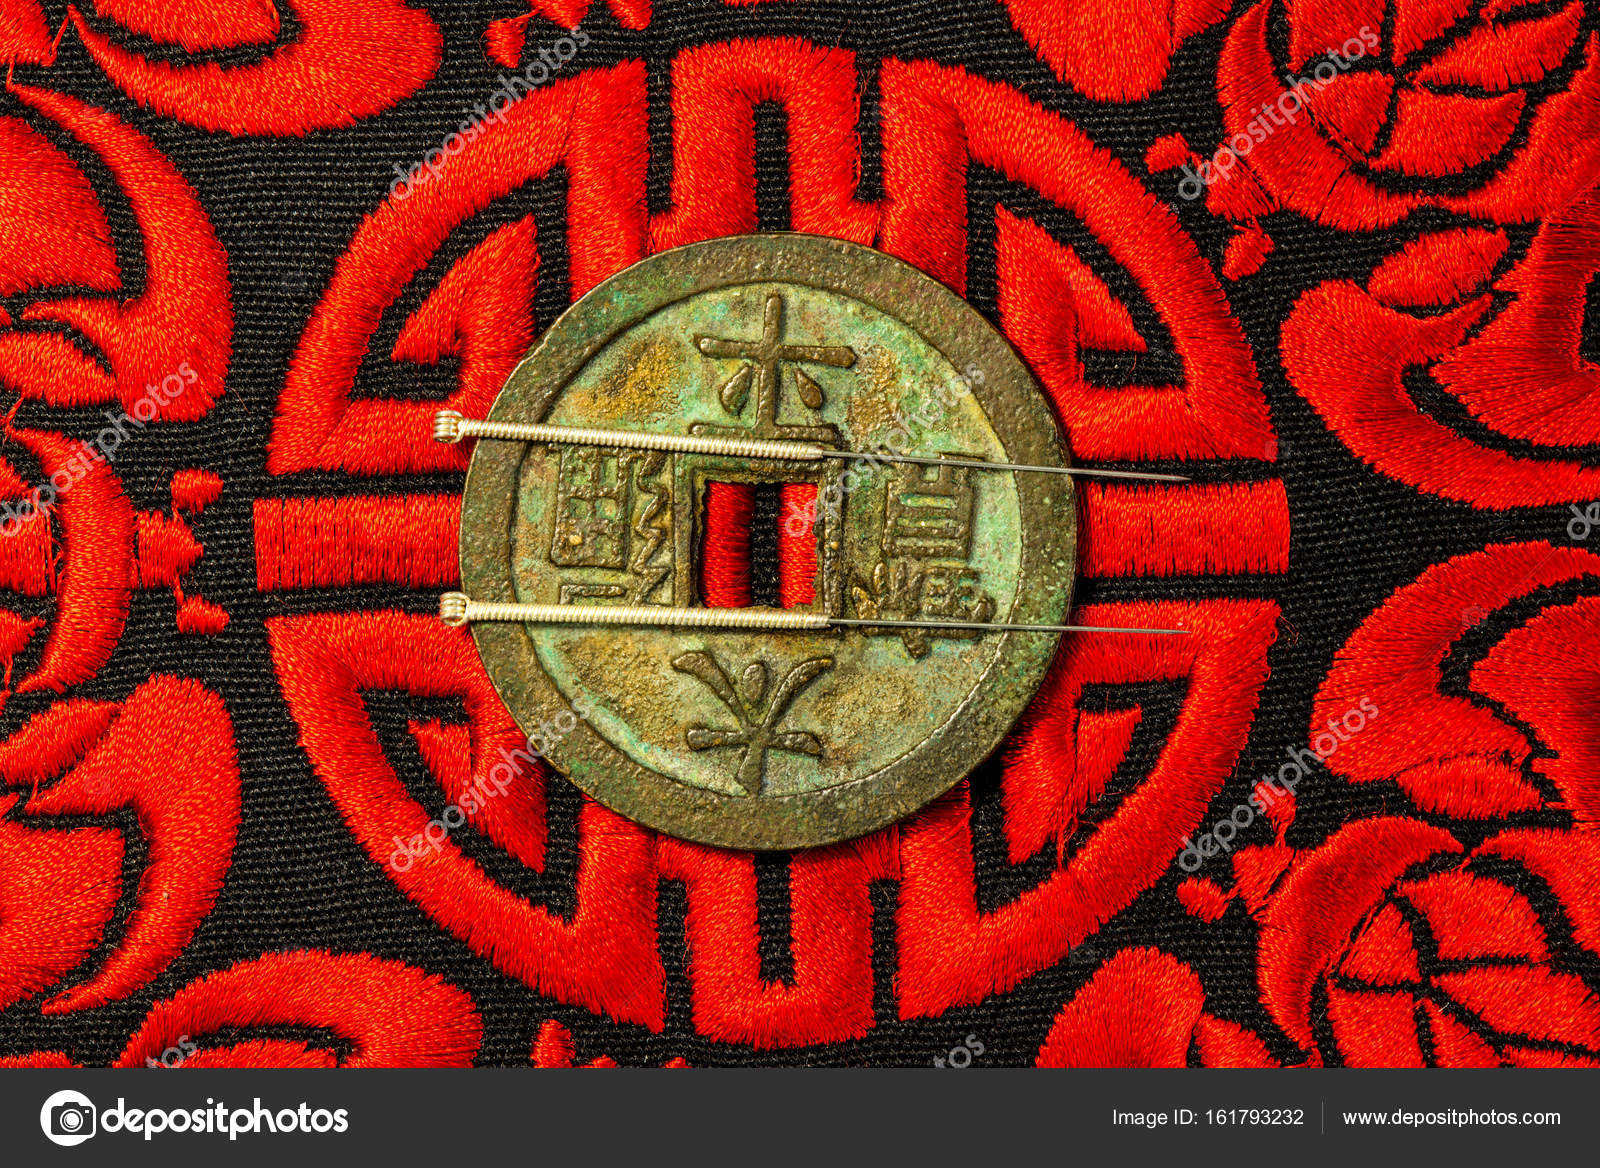 Acupuncture Needles On Chinese Coin And Symbol For Immortality